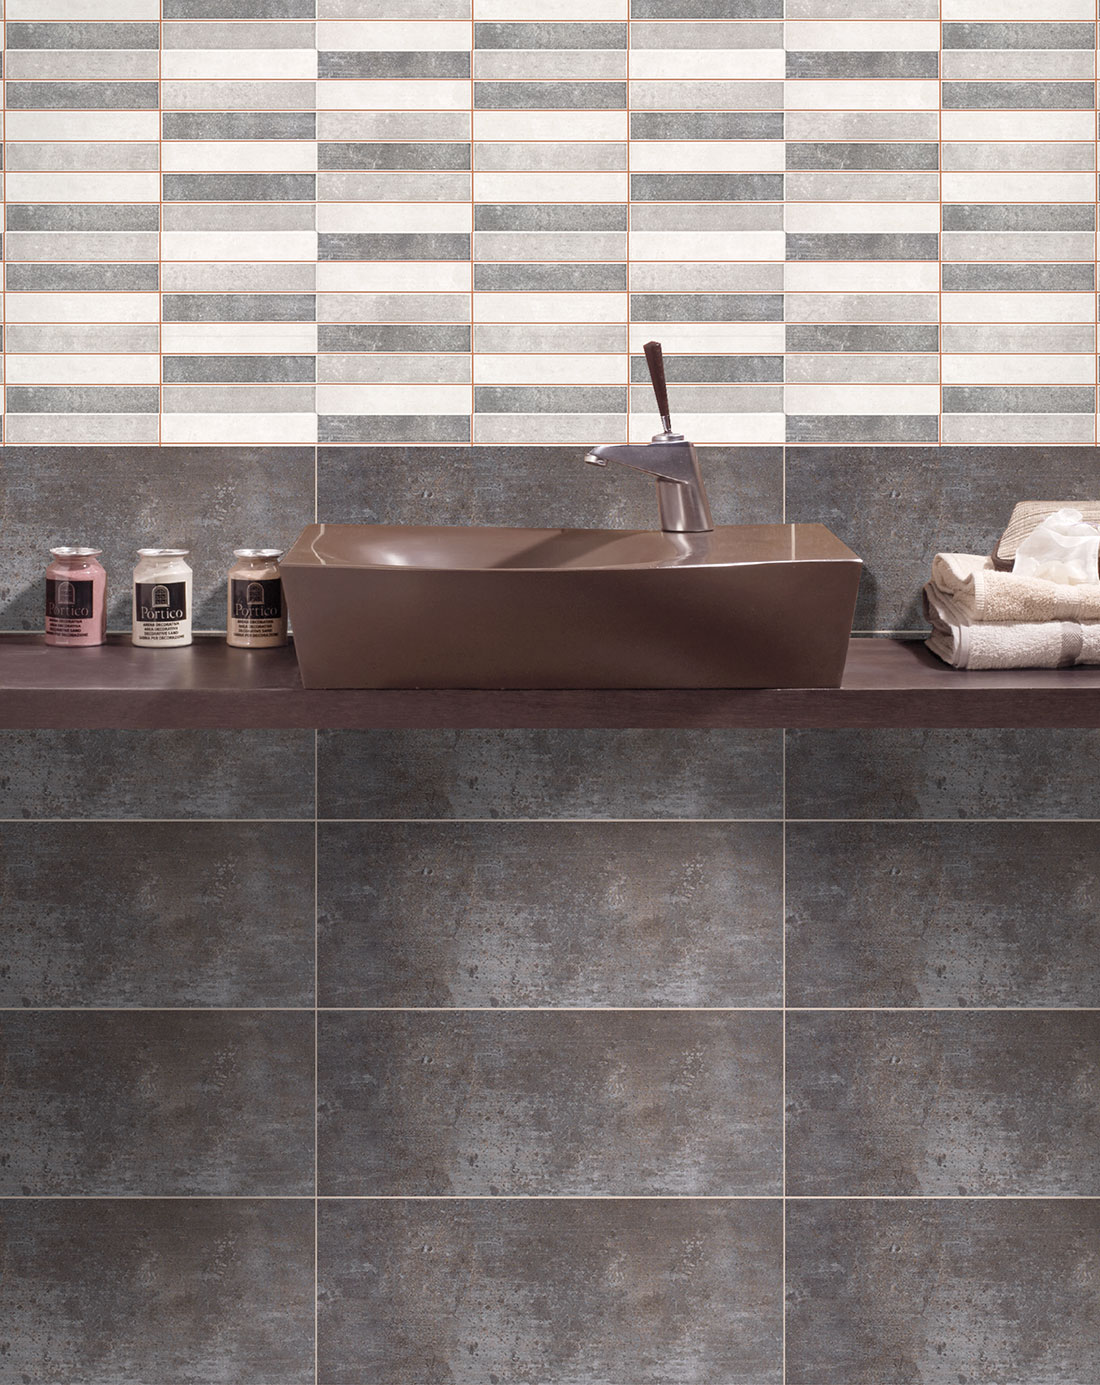 Wall tiles bulevar ripple antique kitchen wall tiles bulevar - Secret Gris Wall Tiles Bathroom Tiles Direct